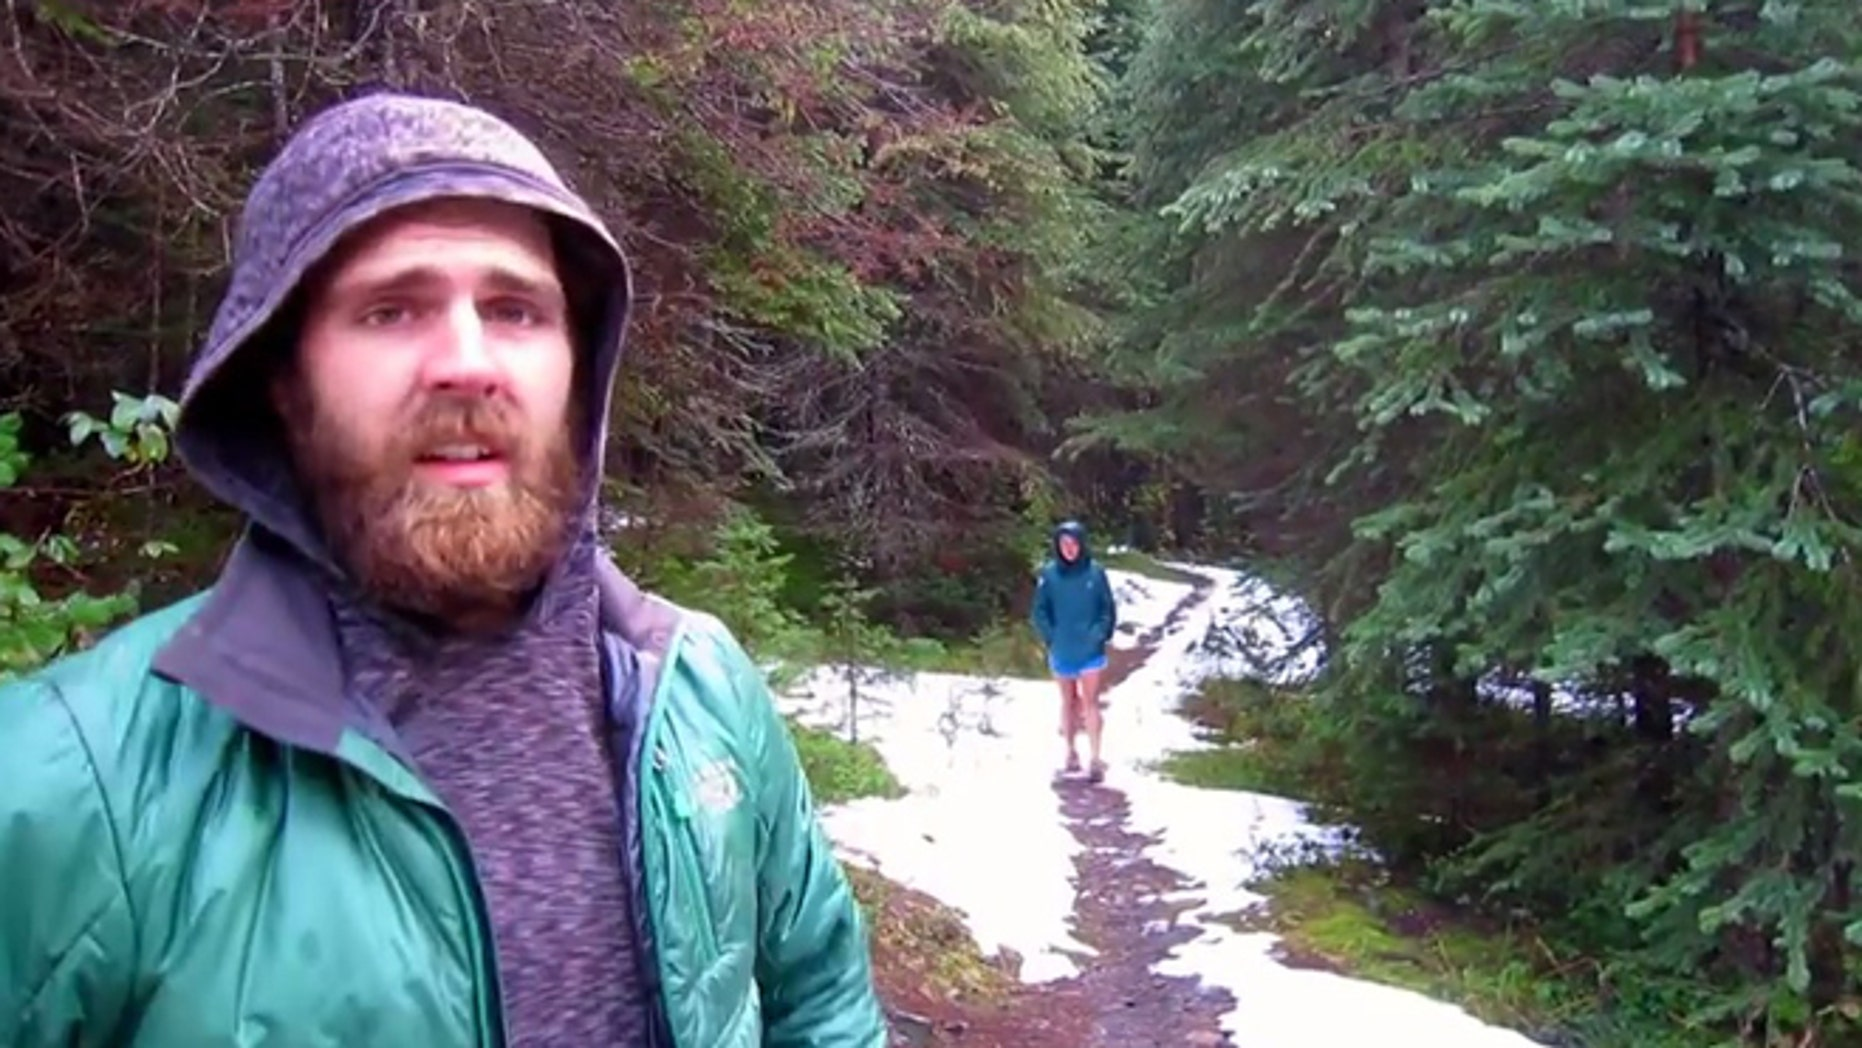 Mac completes his journey near the U.S.-Canadian border on the Pacific Crest Trail.